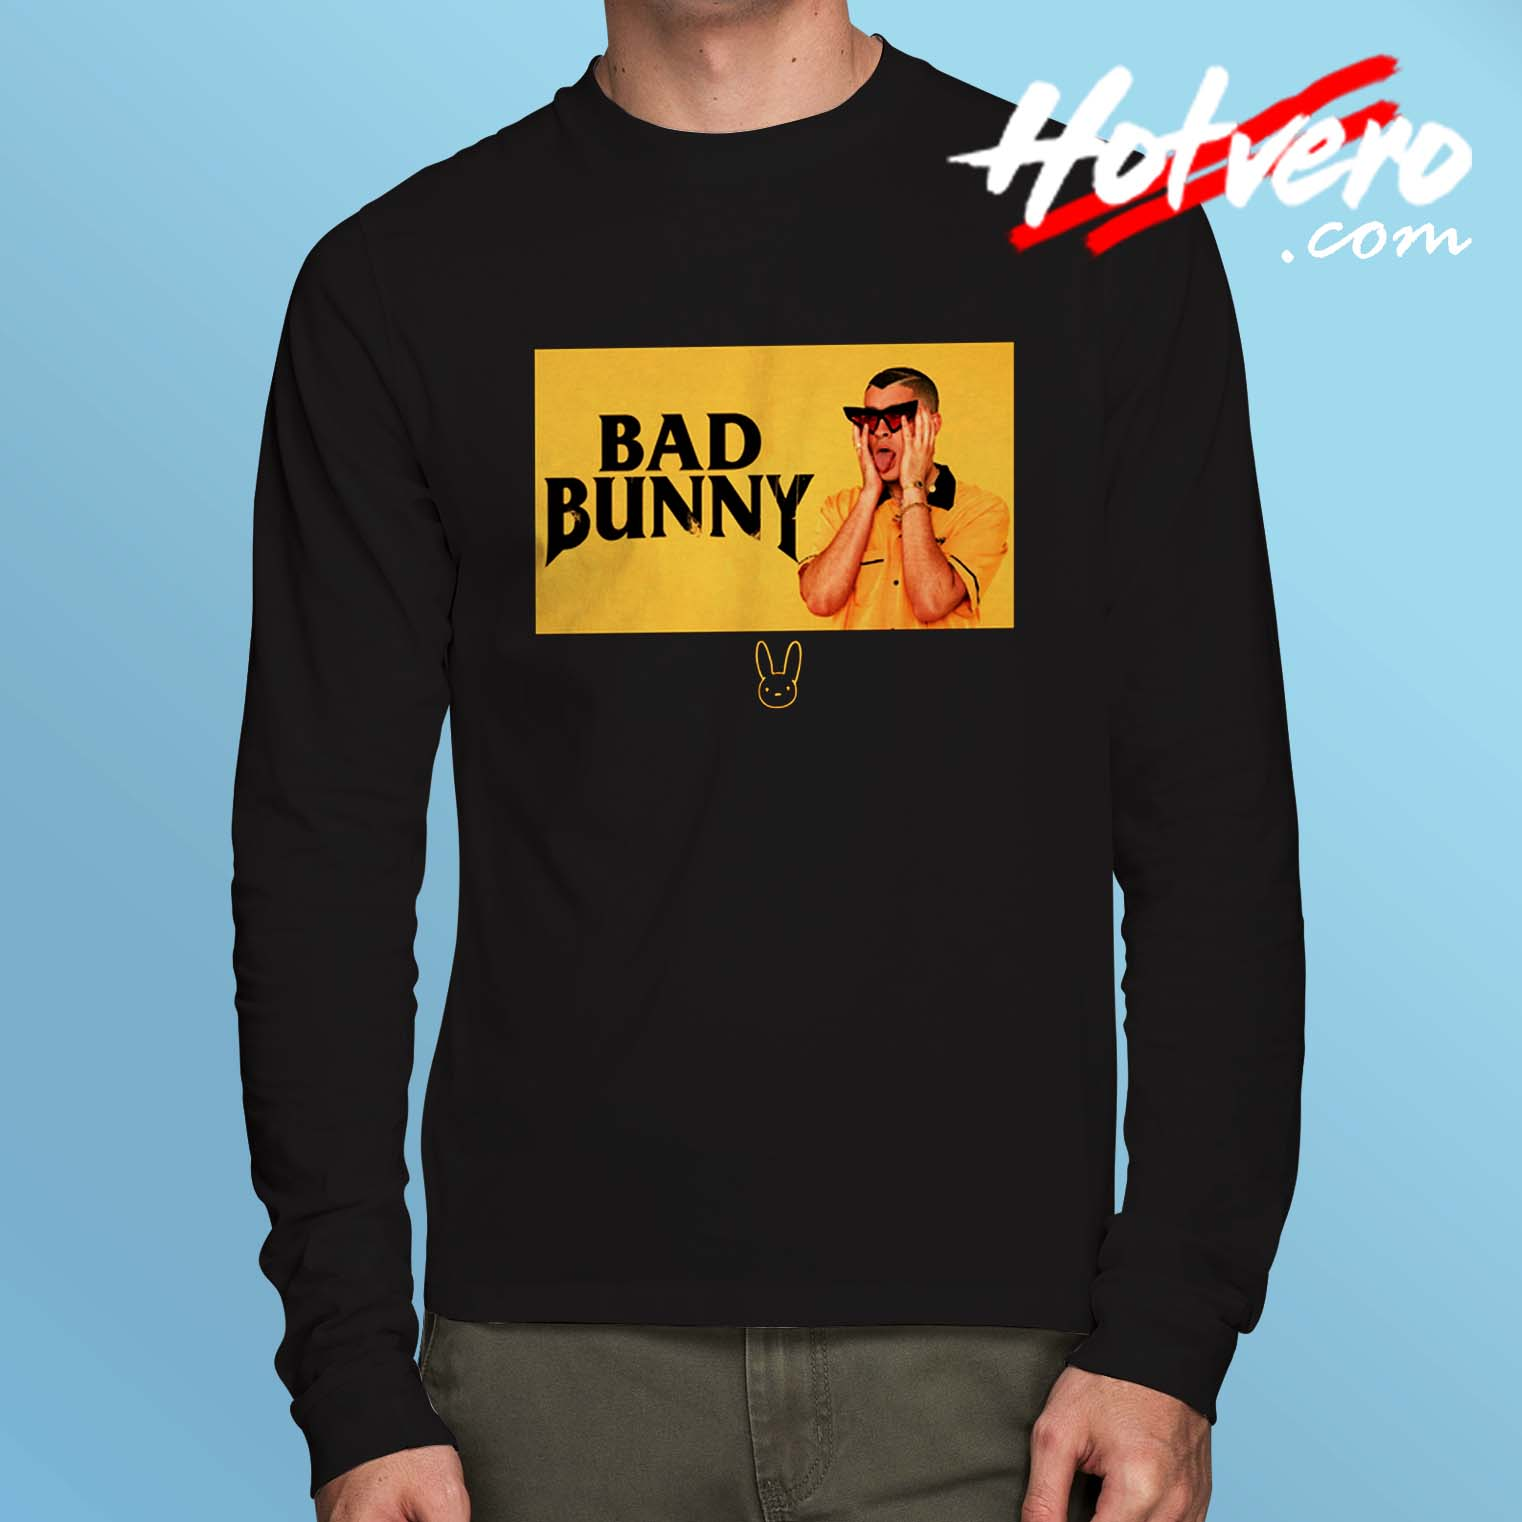 4a405feaa0 Bad Bunny Black And Yellow Long Sleeve T Shirt - Hotvero.com